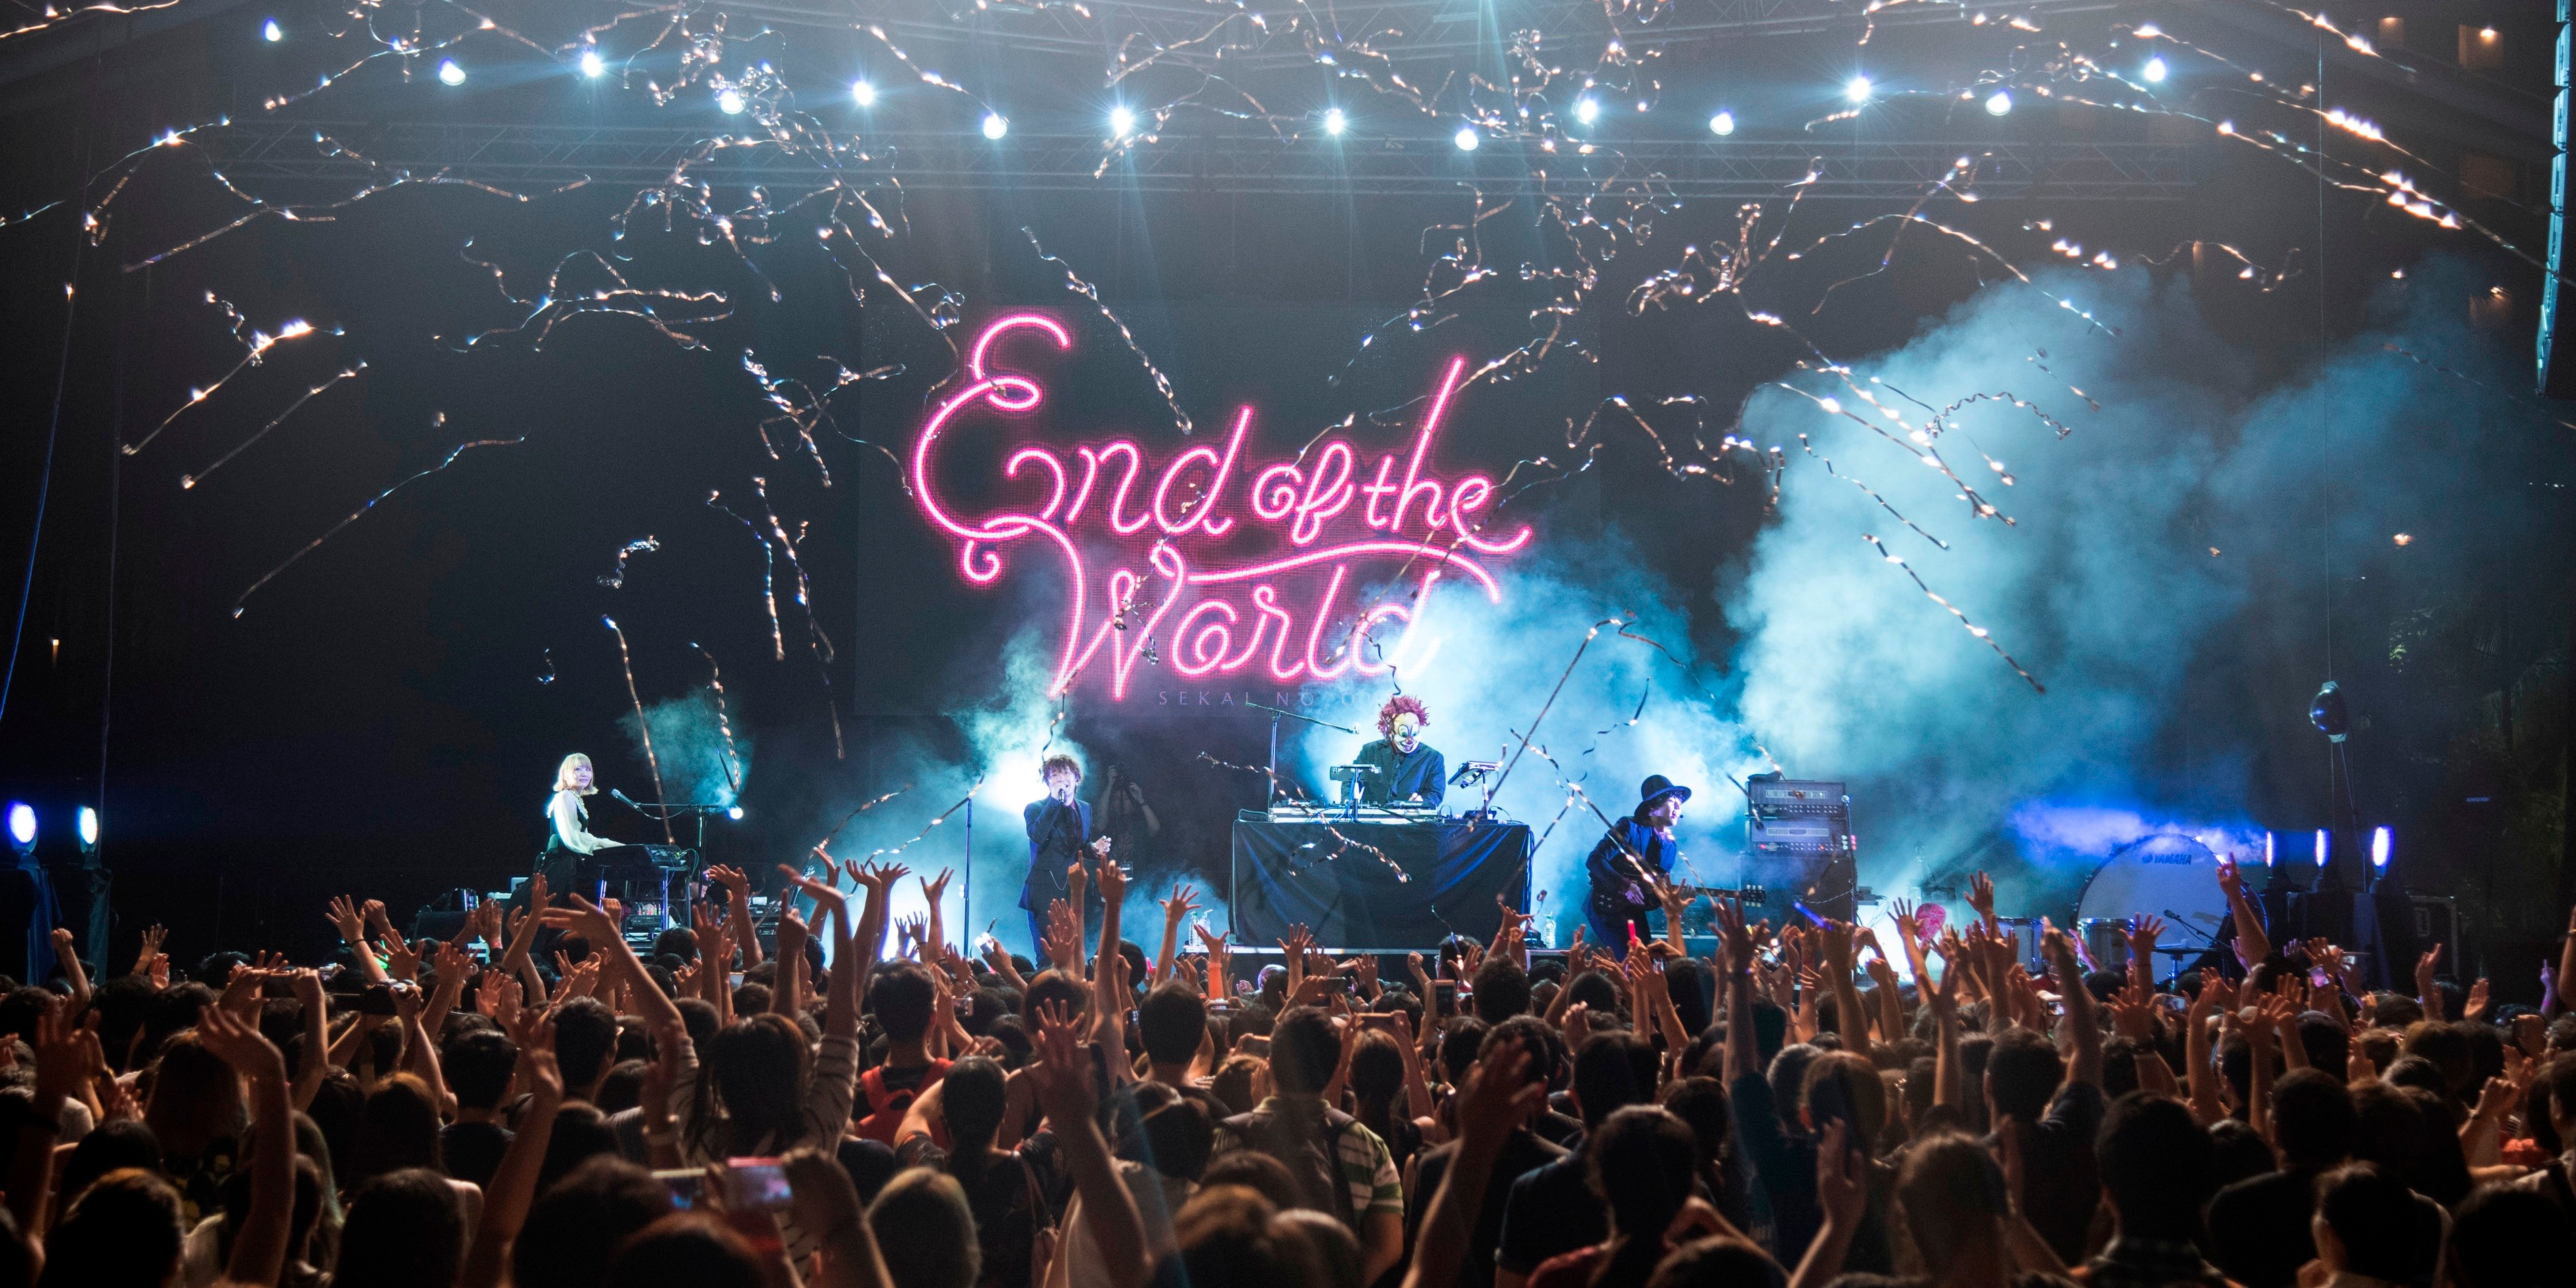 PHOTO GALLERY: SEKAI NO OWARI hosts a spirited End of the World party in Singapore